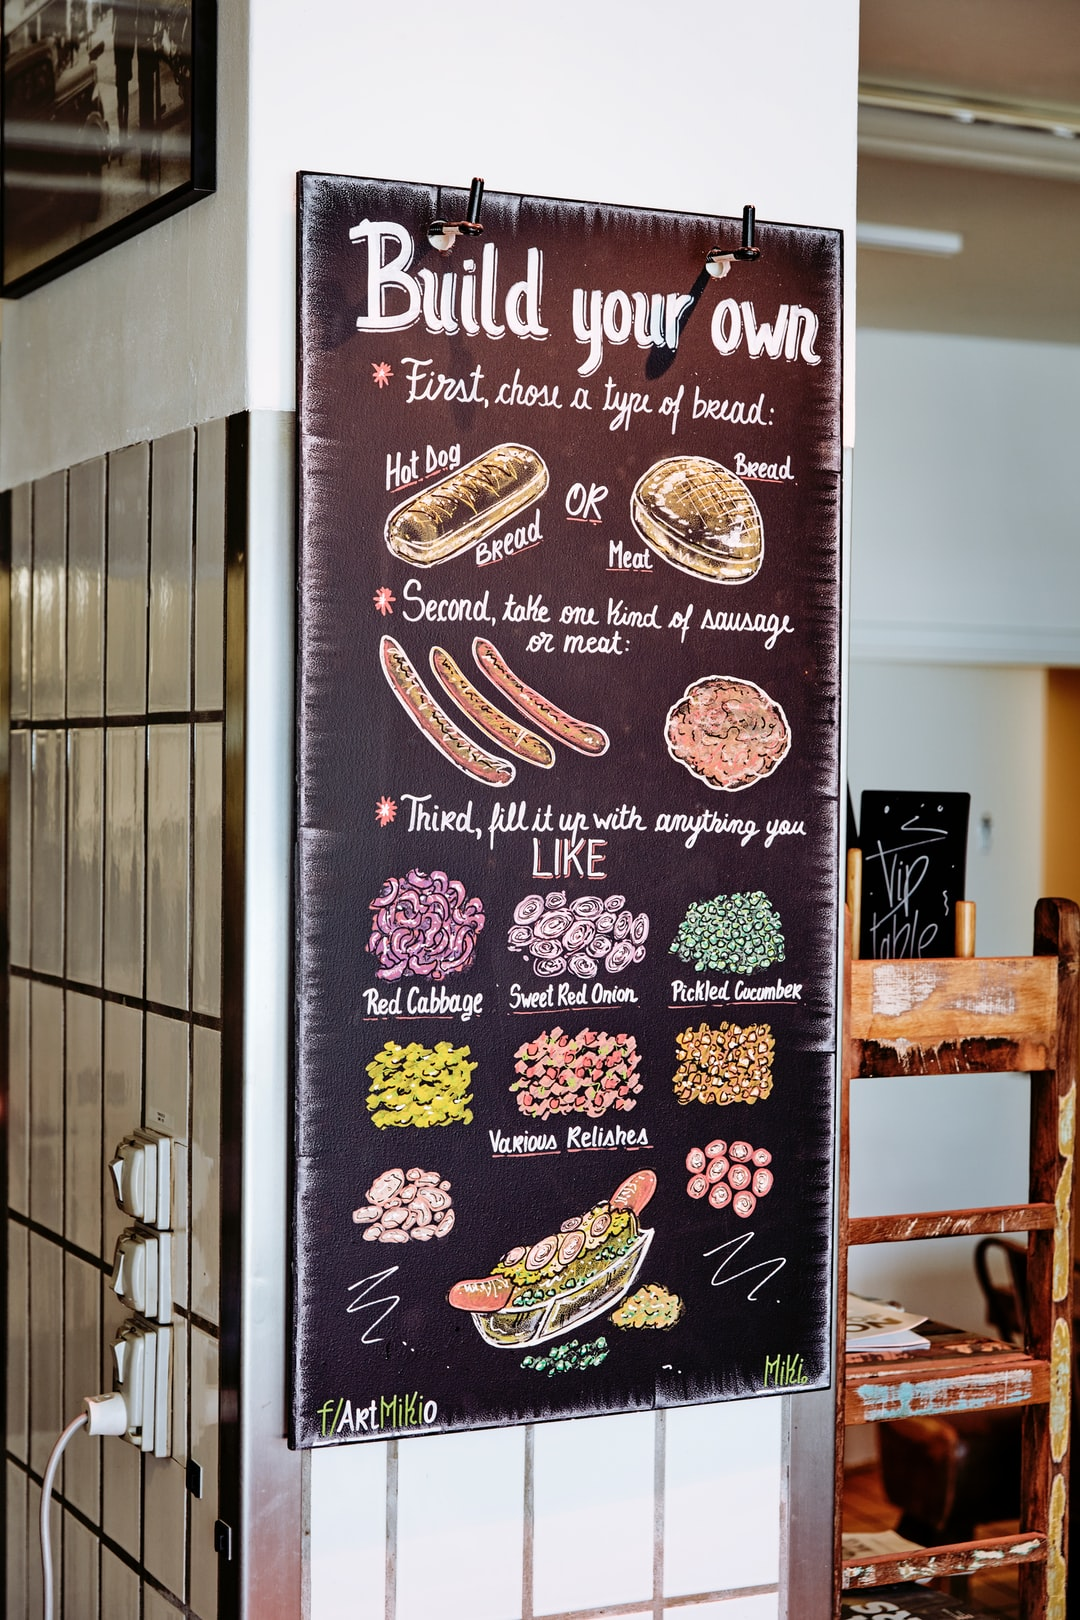 Build your own hot dog